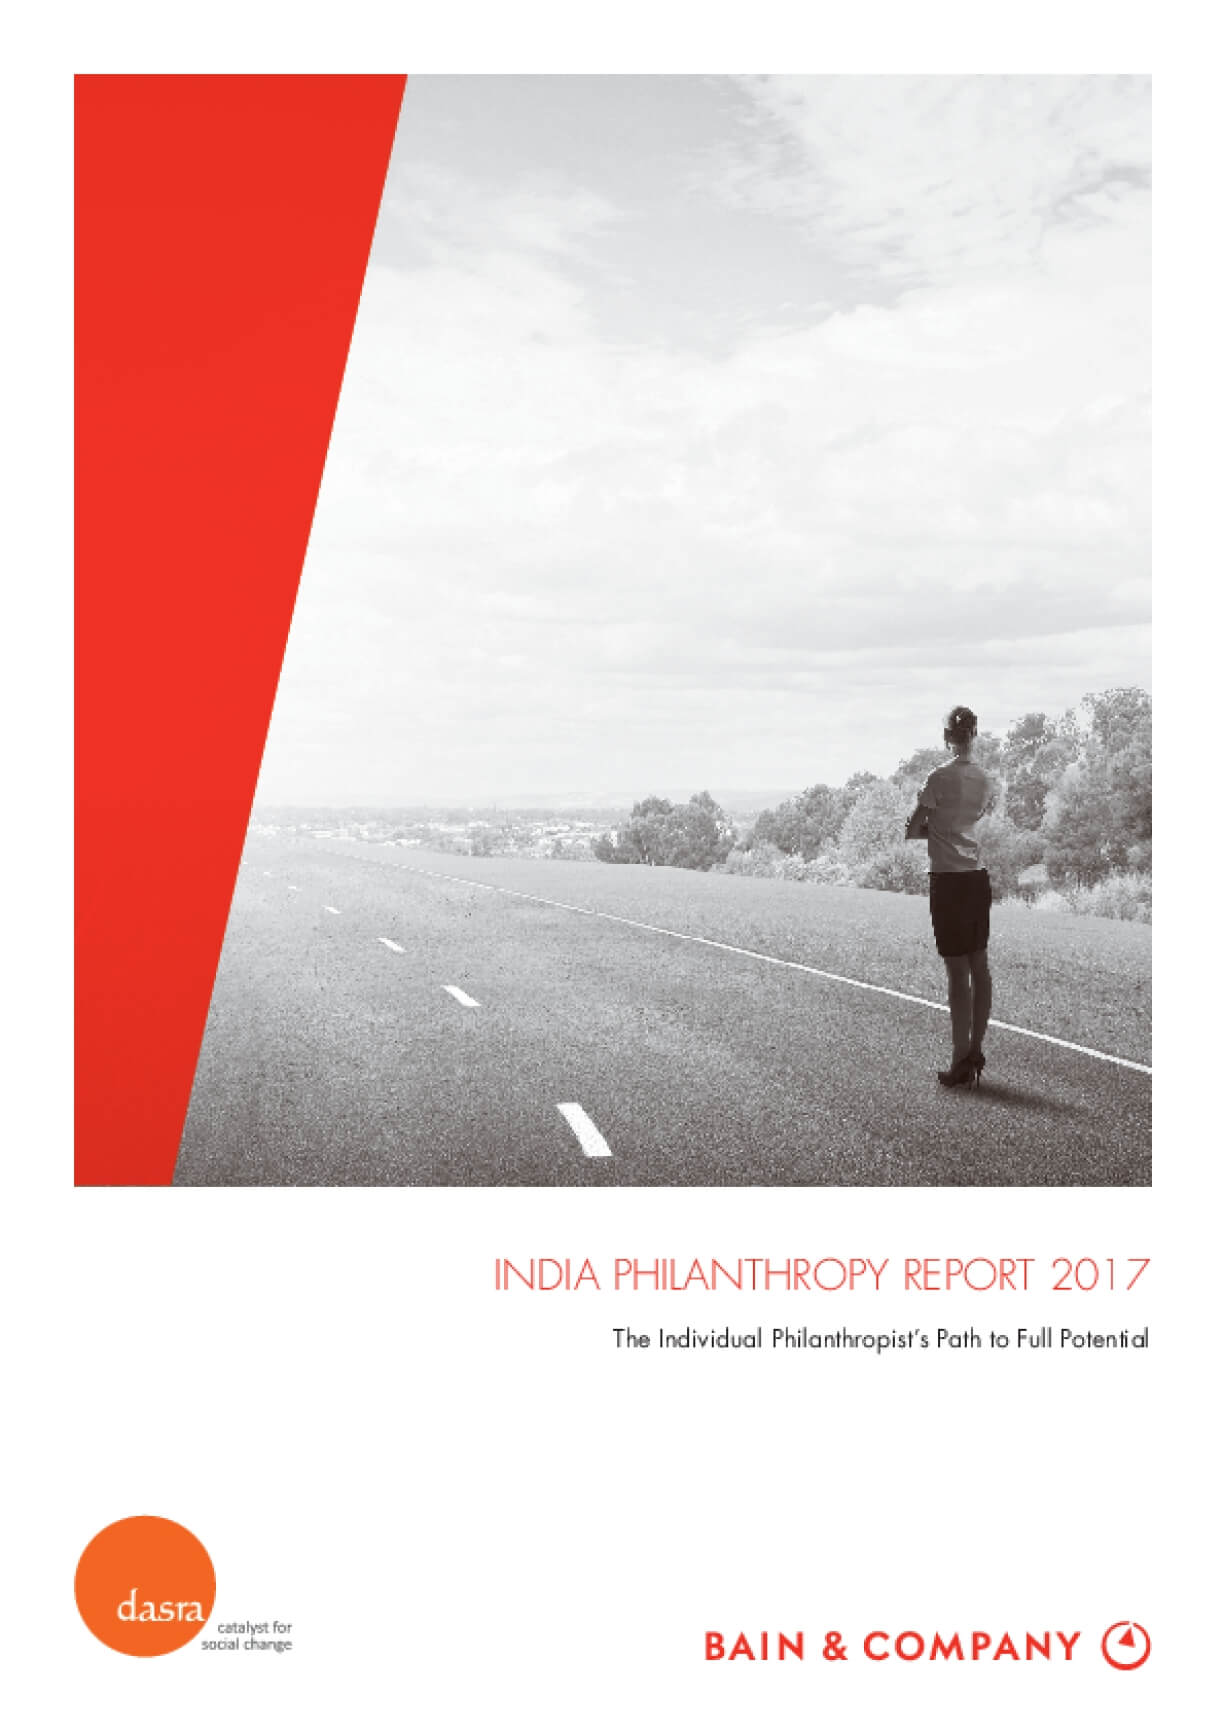 India Philanthropy Report 2017 - The Individual Philanthropist's Path to Full Potential